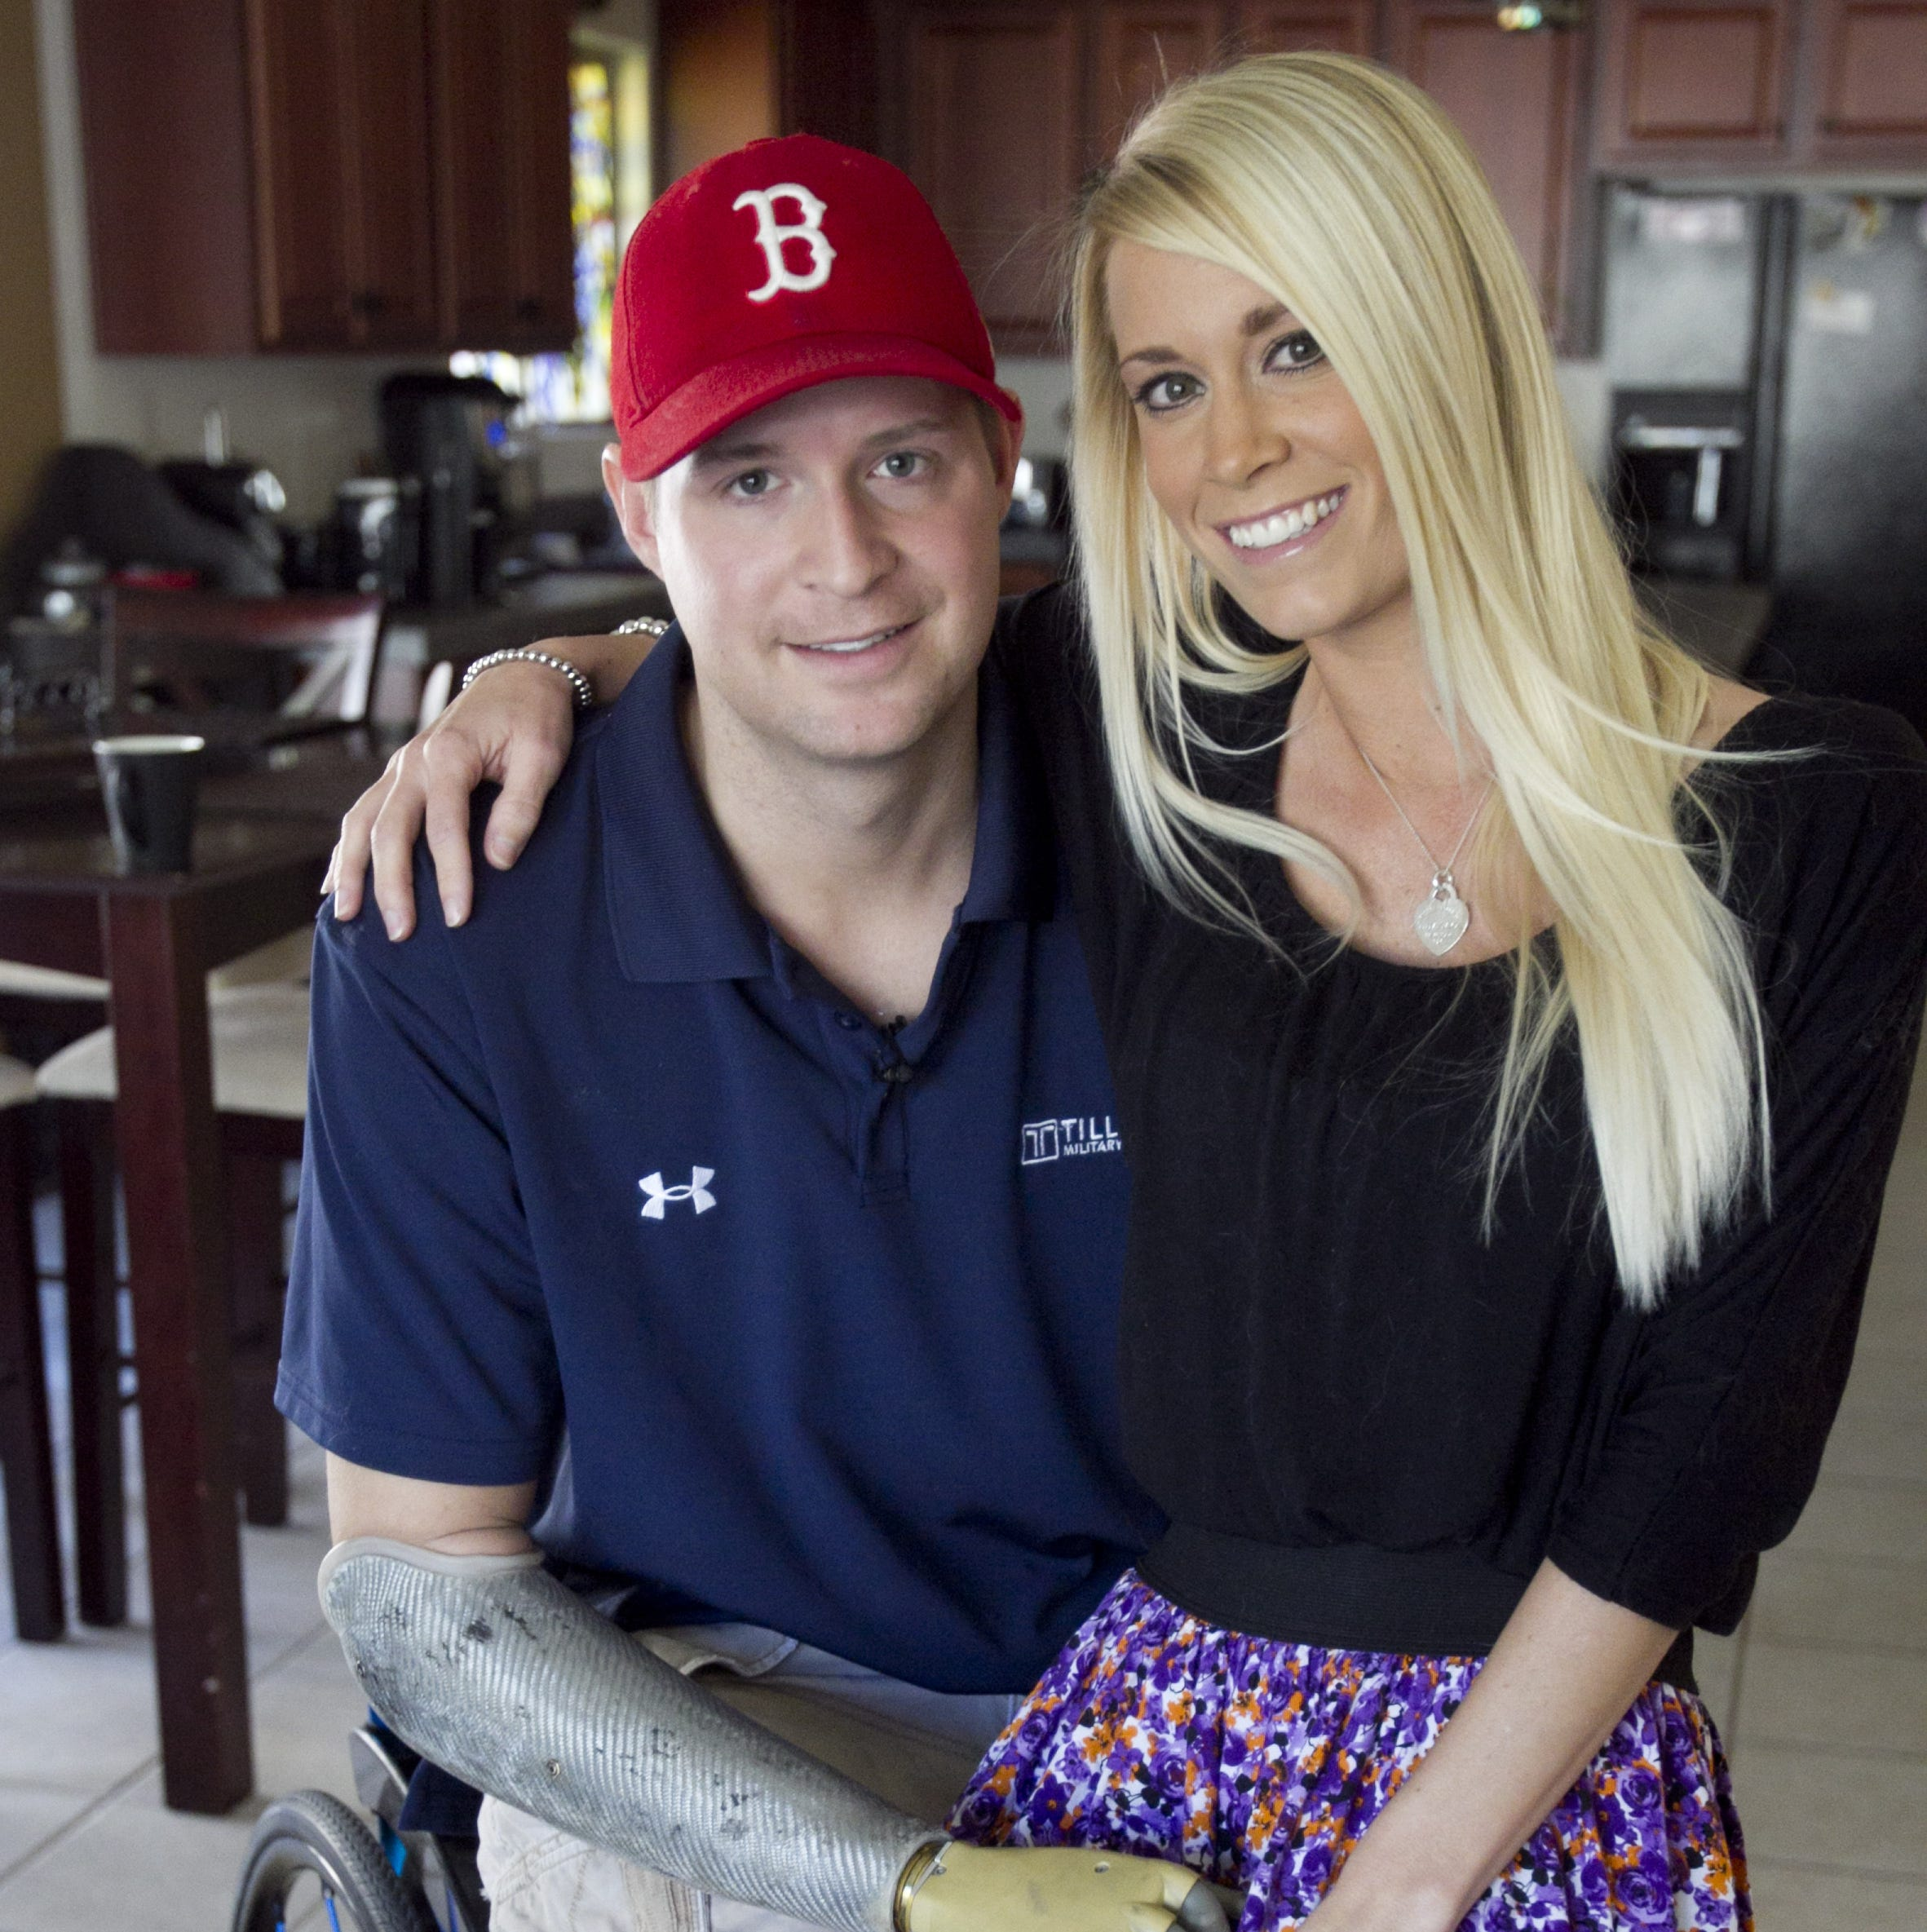 Iraq War veteran Brian Kolfage sits with his wife Ashley Kolfage in their Tucson home a 2012 file photo. He lost both legs and his right arm in Iraq.